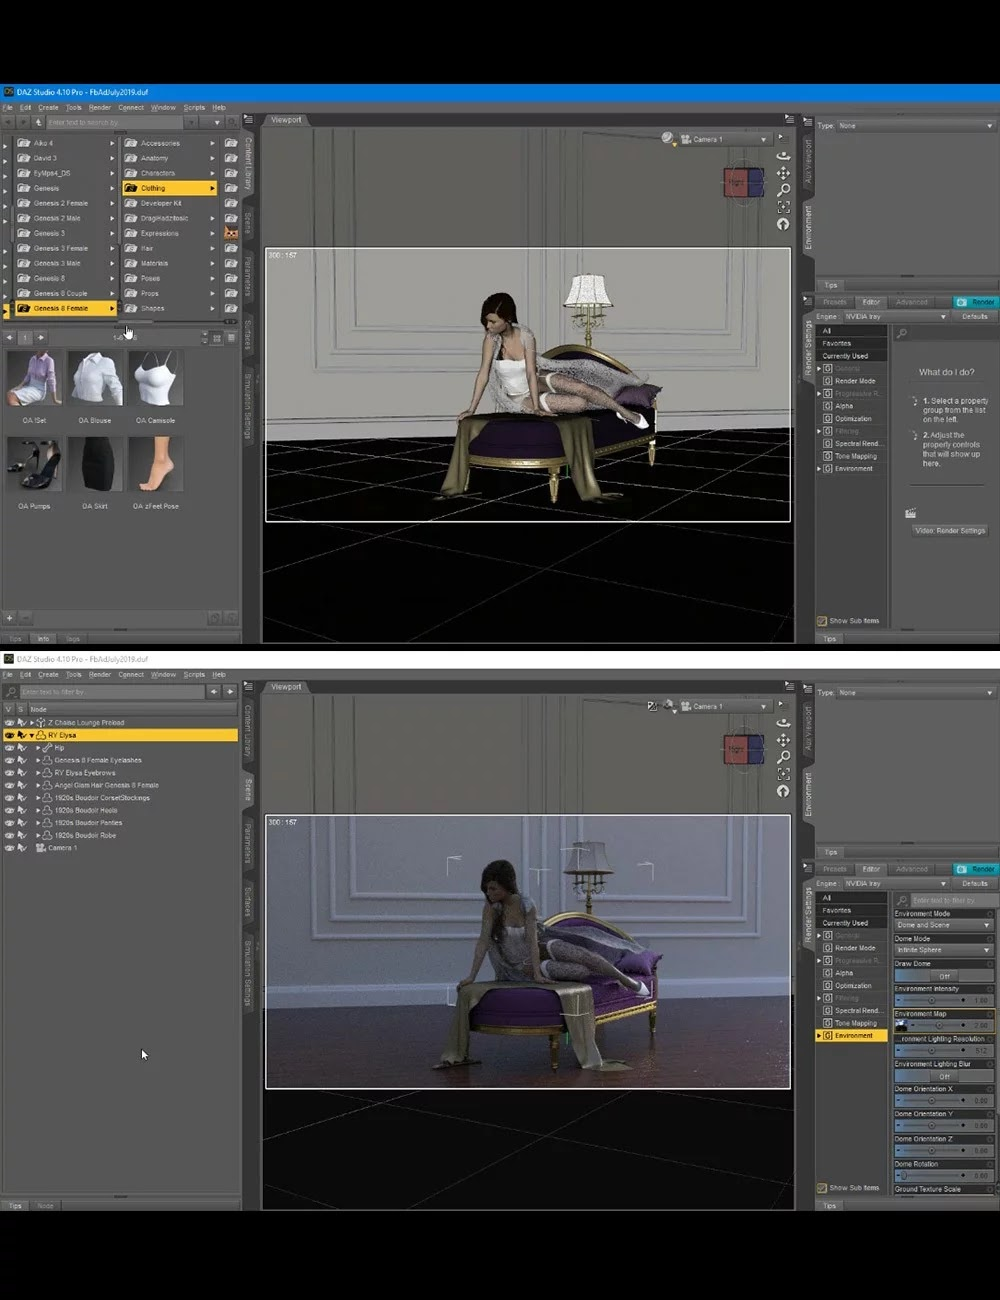 Download DAZ Studio 3 for FREE!: DAZ 3D - Girl On a Chair